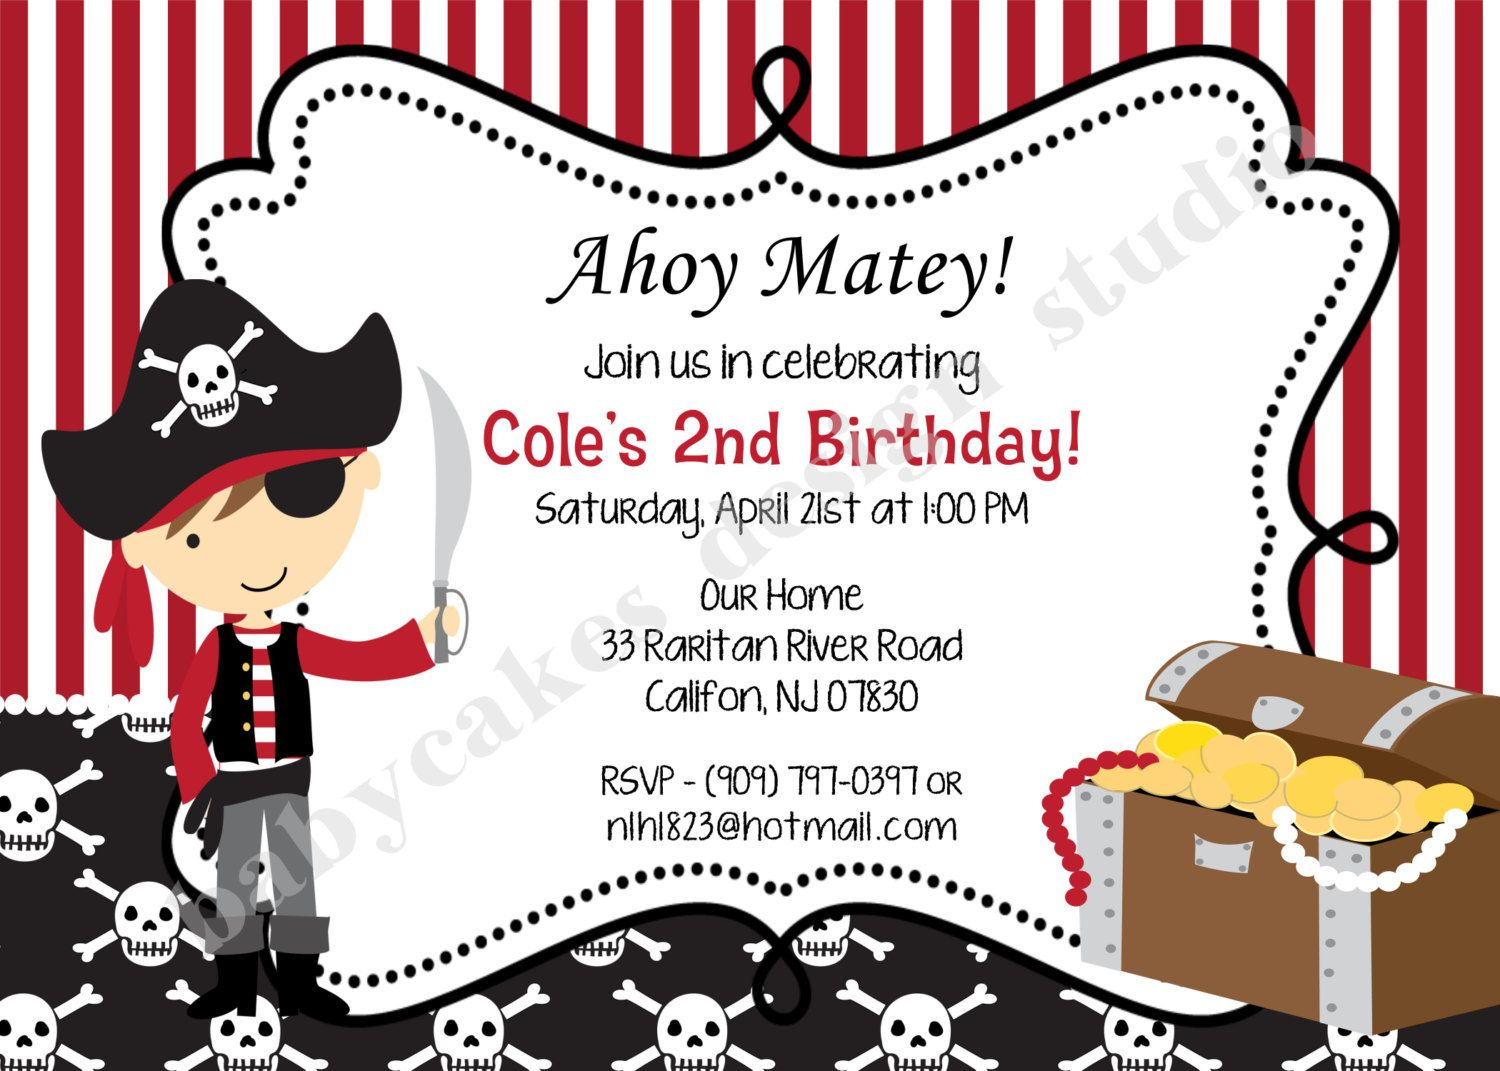 Pirate Invitation Invite Pirate birthday pirate party pirate ...